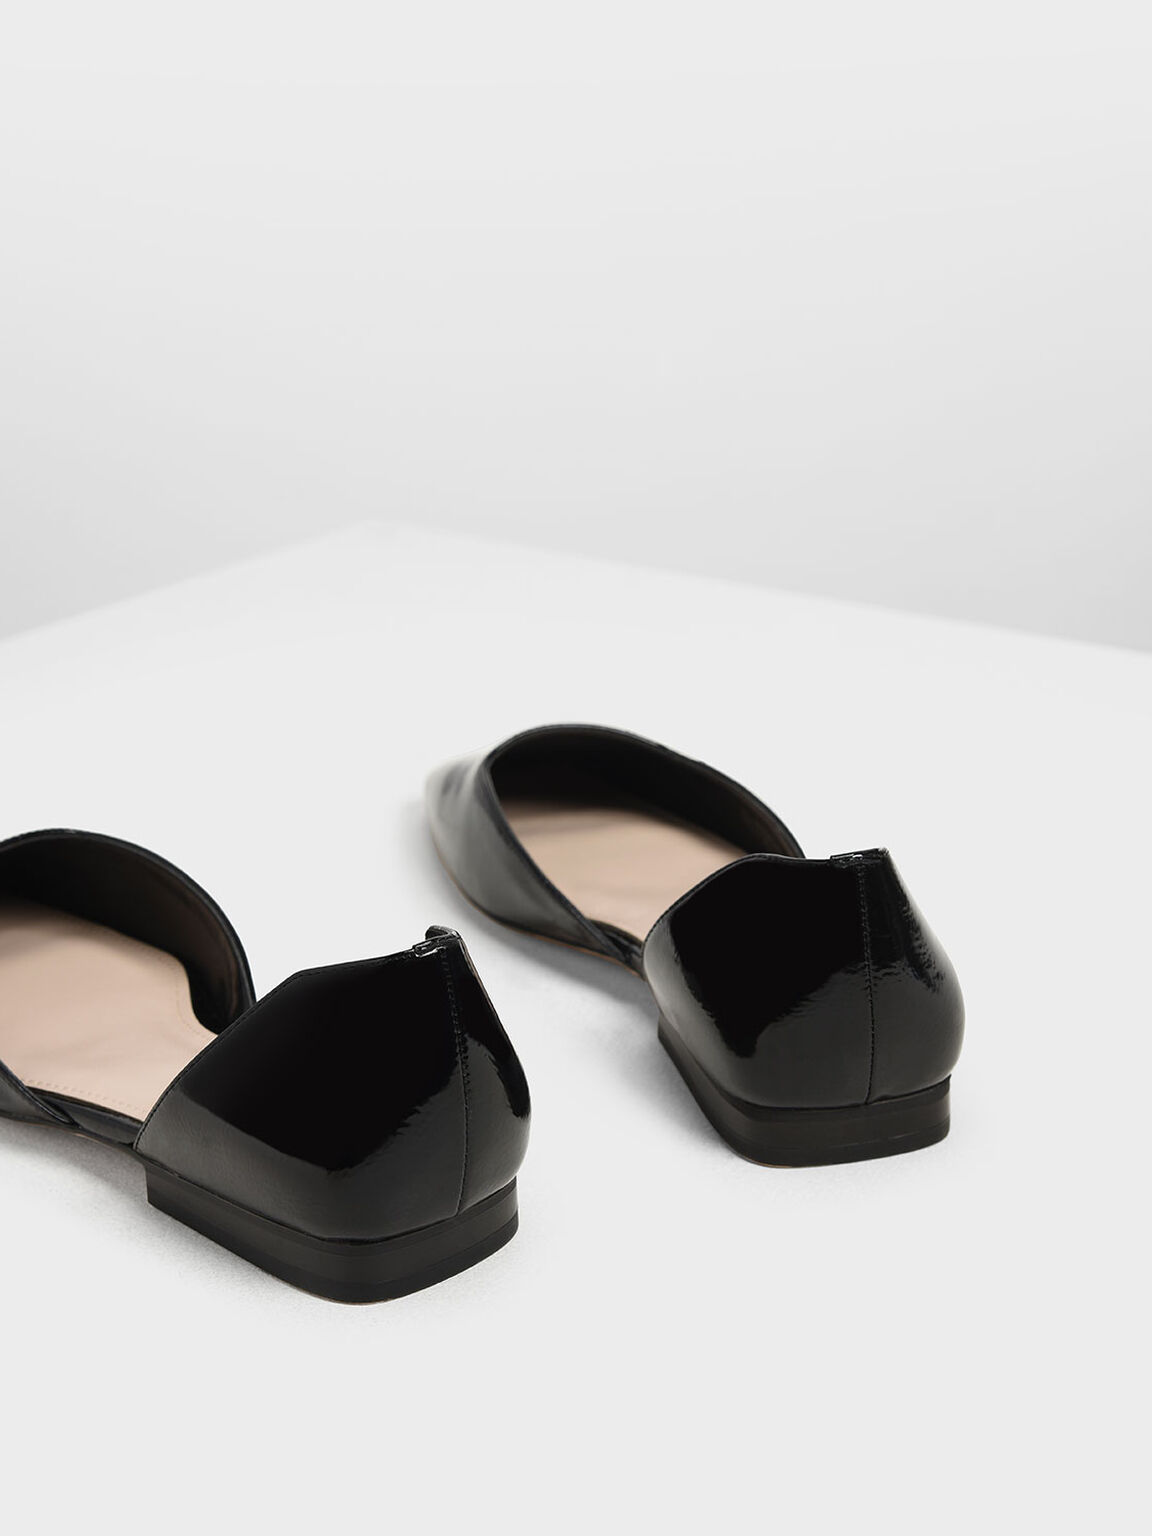 Square Toe D'Orsay Flats, Black, hi-res